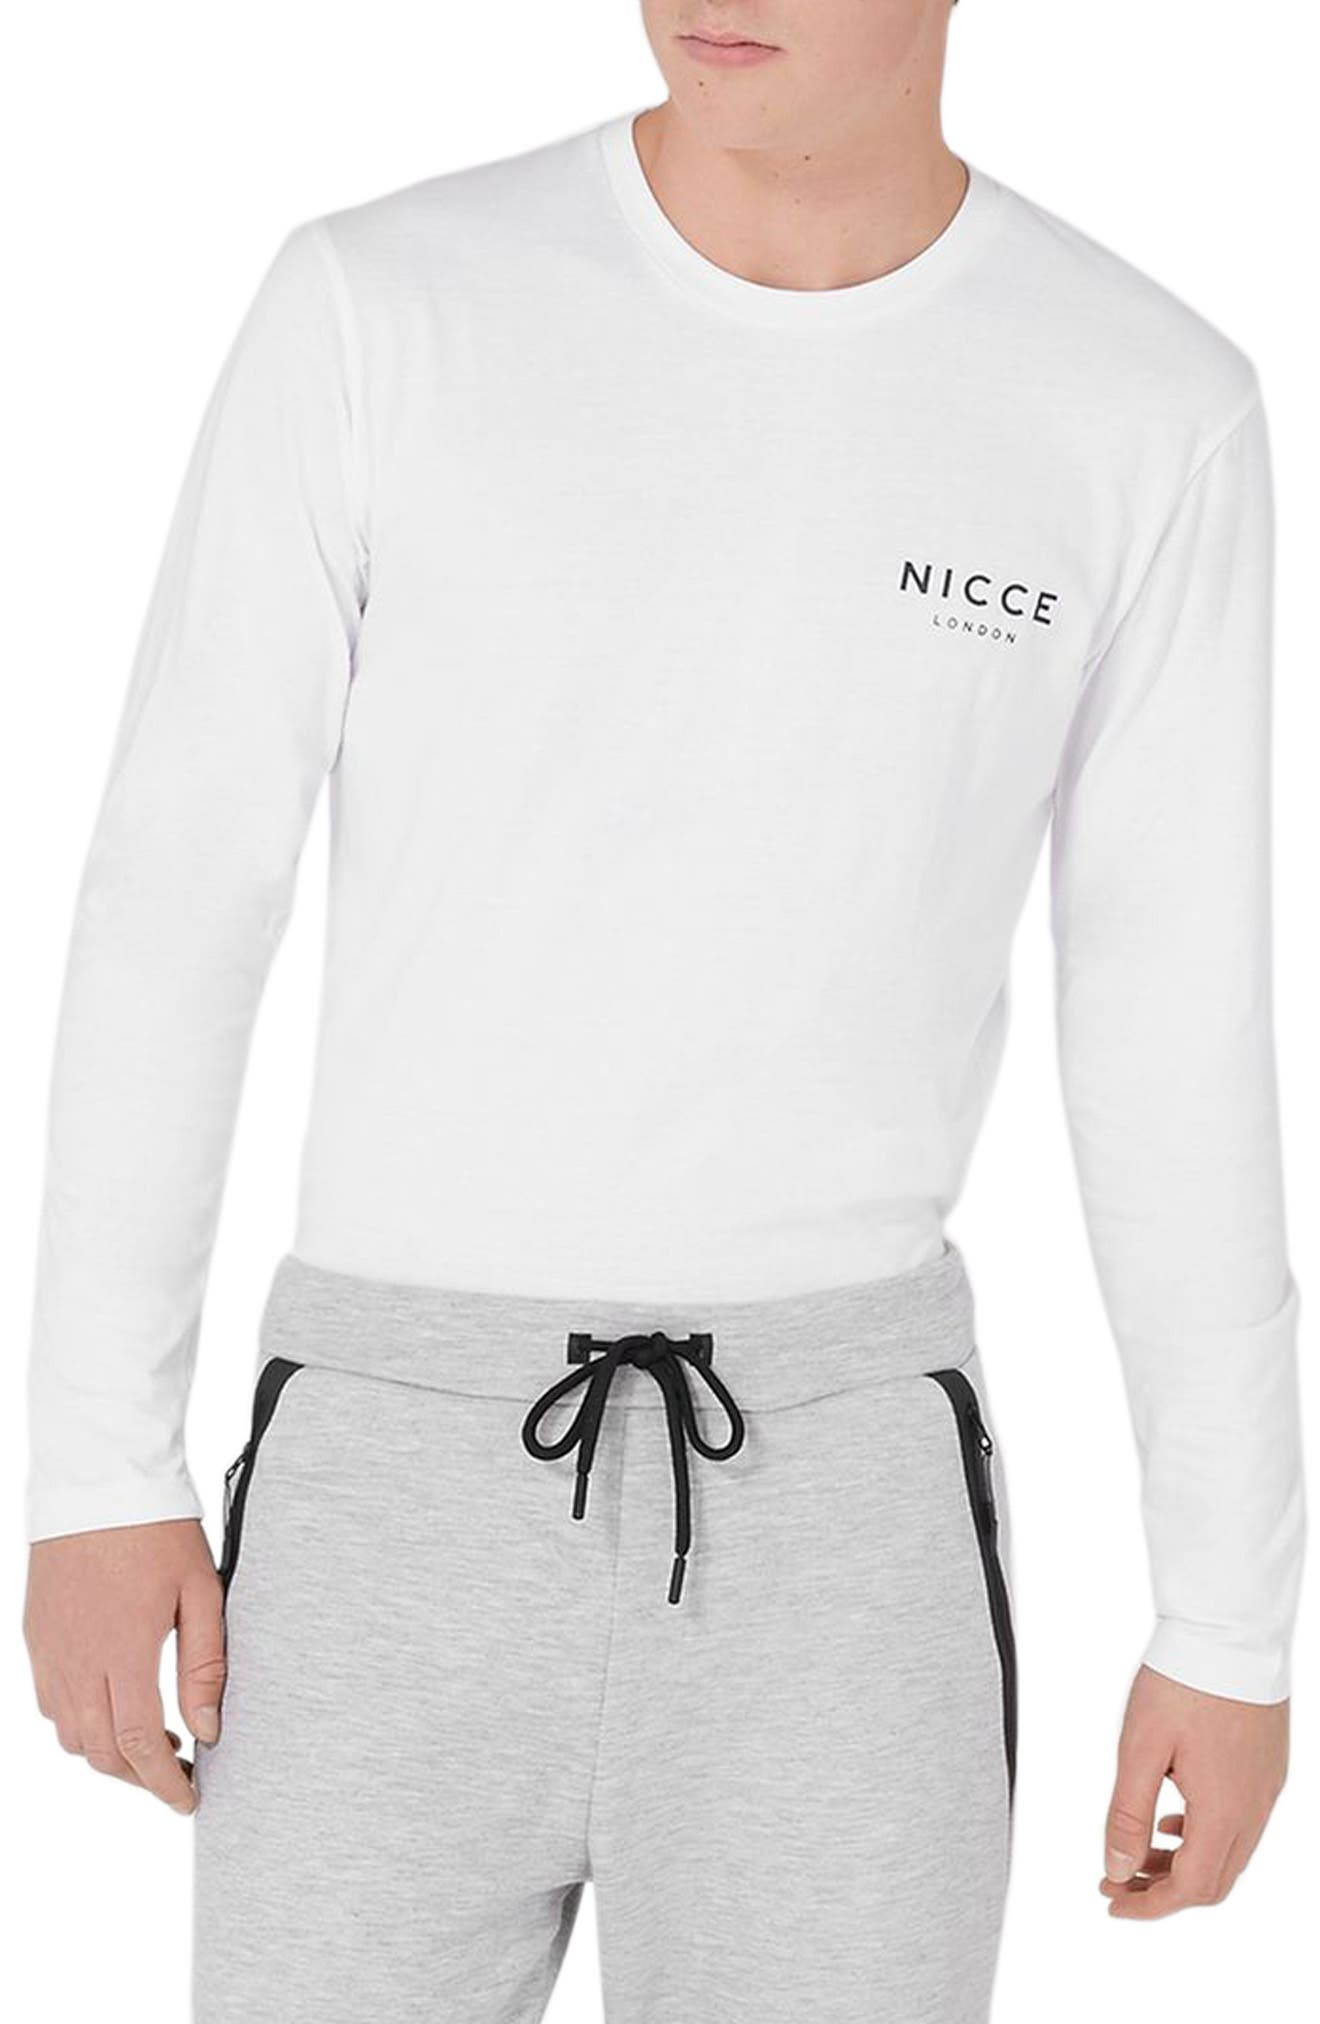 NICCE Graphic Long Sleeve T-Shirt,                         Main,                         color, White